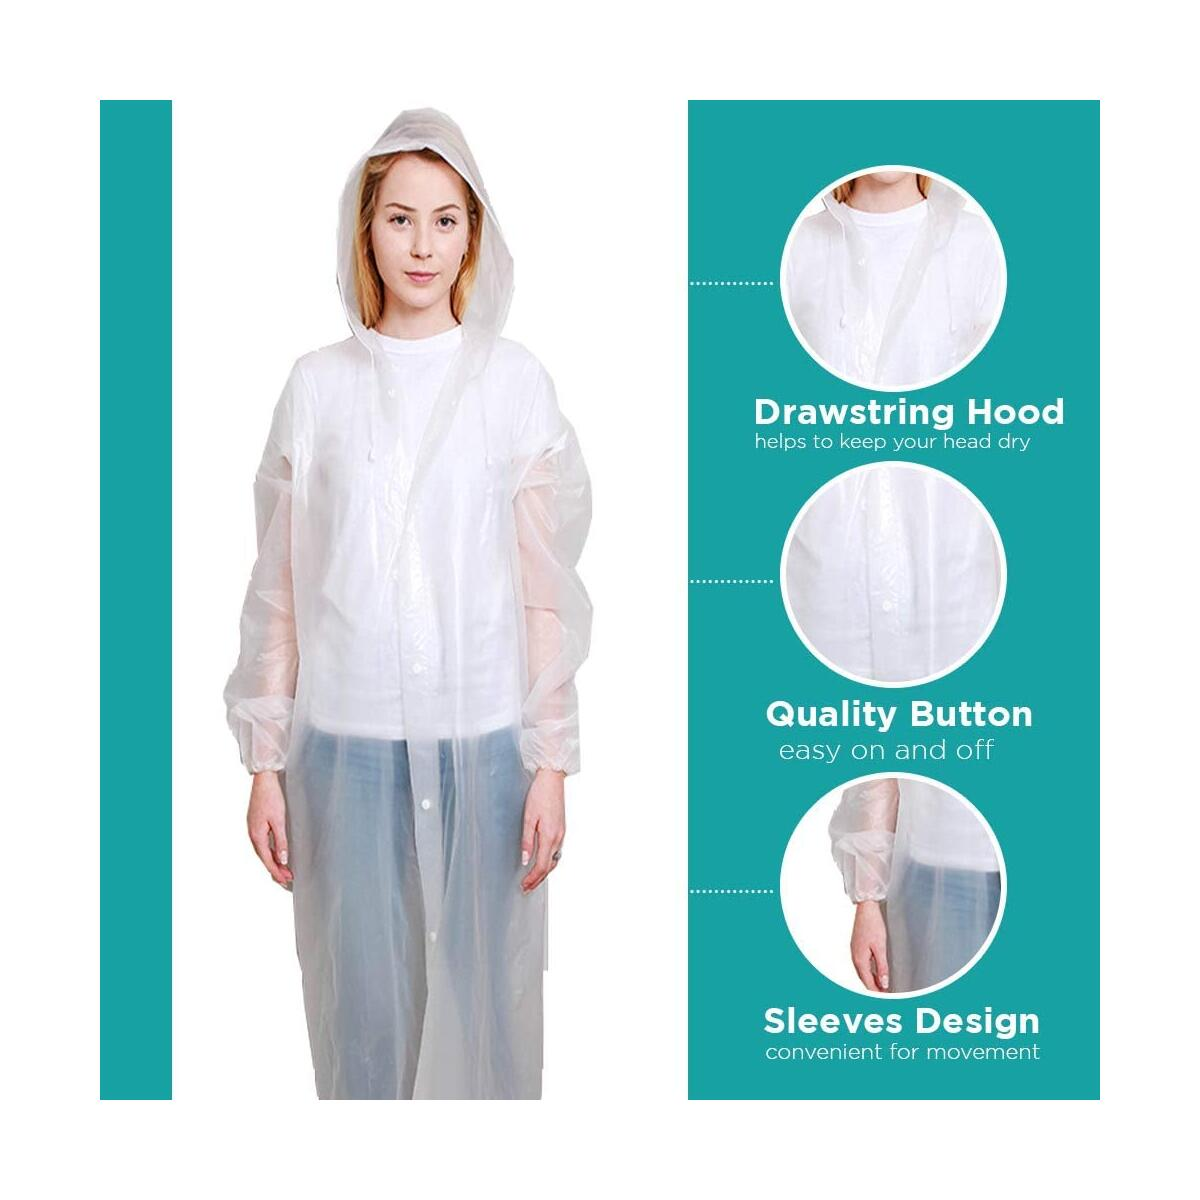 BP TRENDZ Rain Ponchos for Adults, Reusable Rain Coats for Men and Women, Waterproof with Drawstring Hood, Portable Rain Jackets for Emergency – Pack of 2